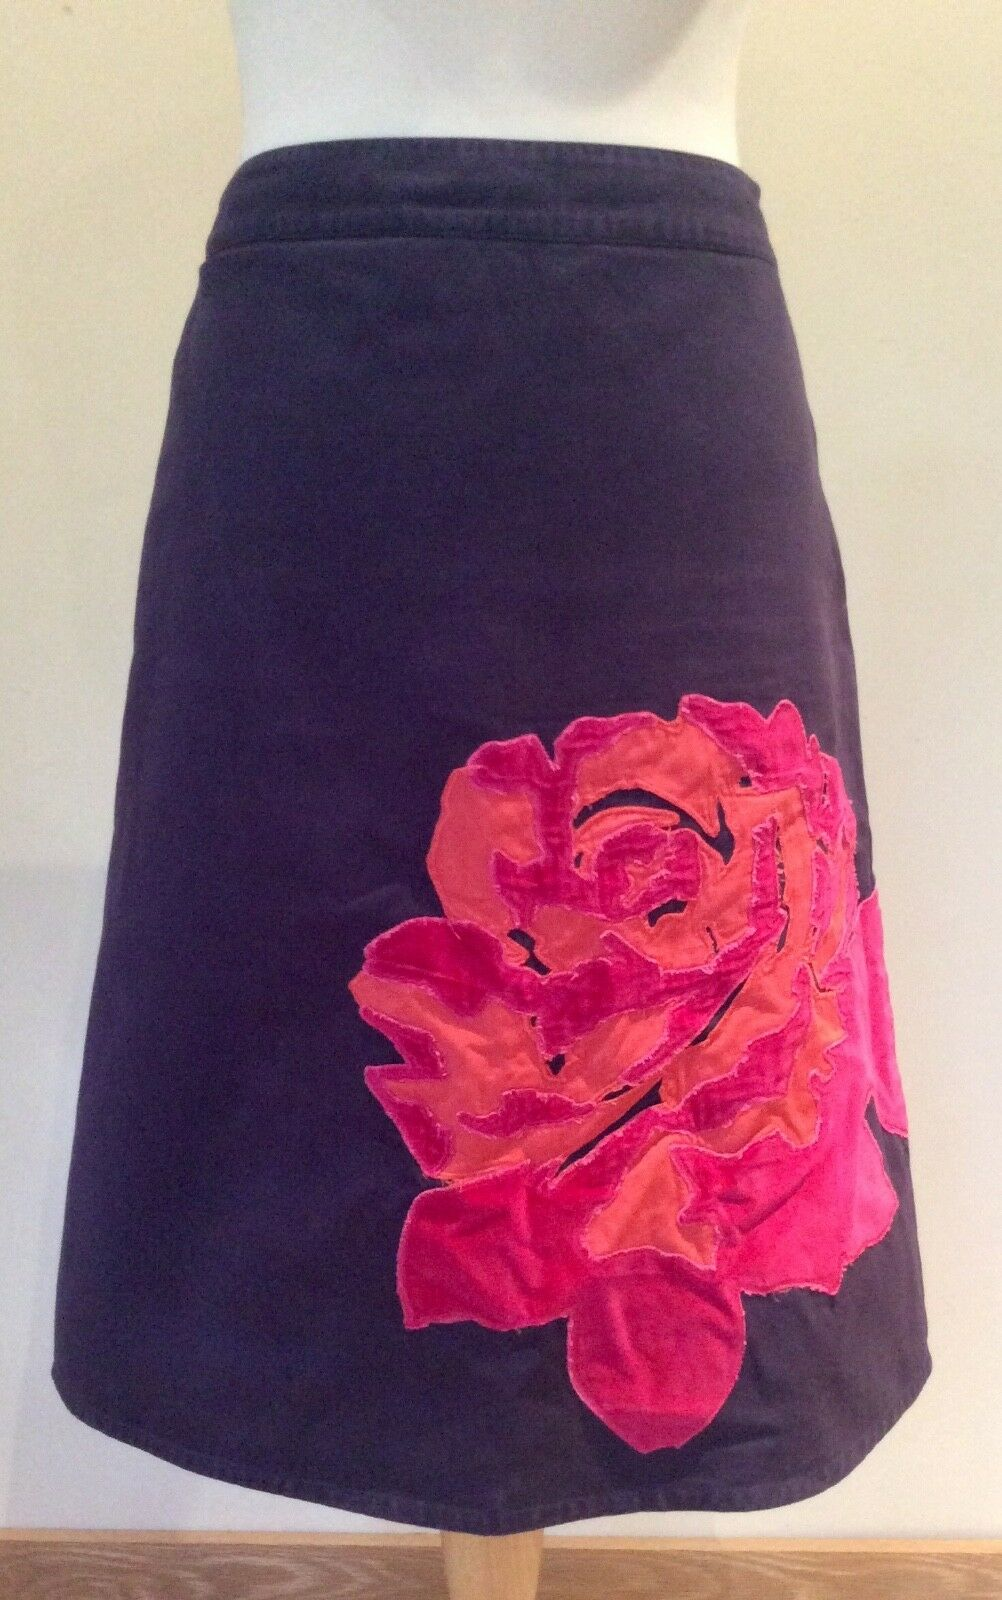 BODEN SKIRT SIZE 10 L PURPLE PINK FLORAL LINED COTTON